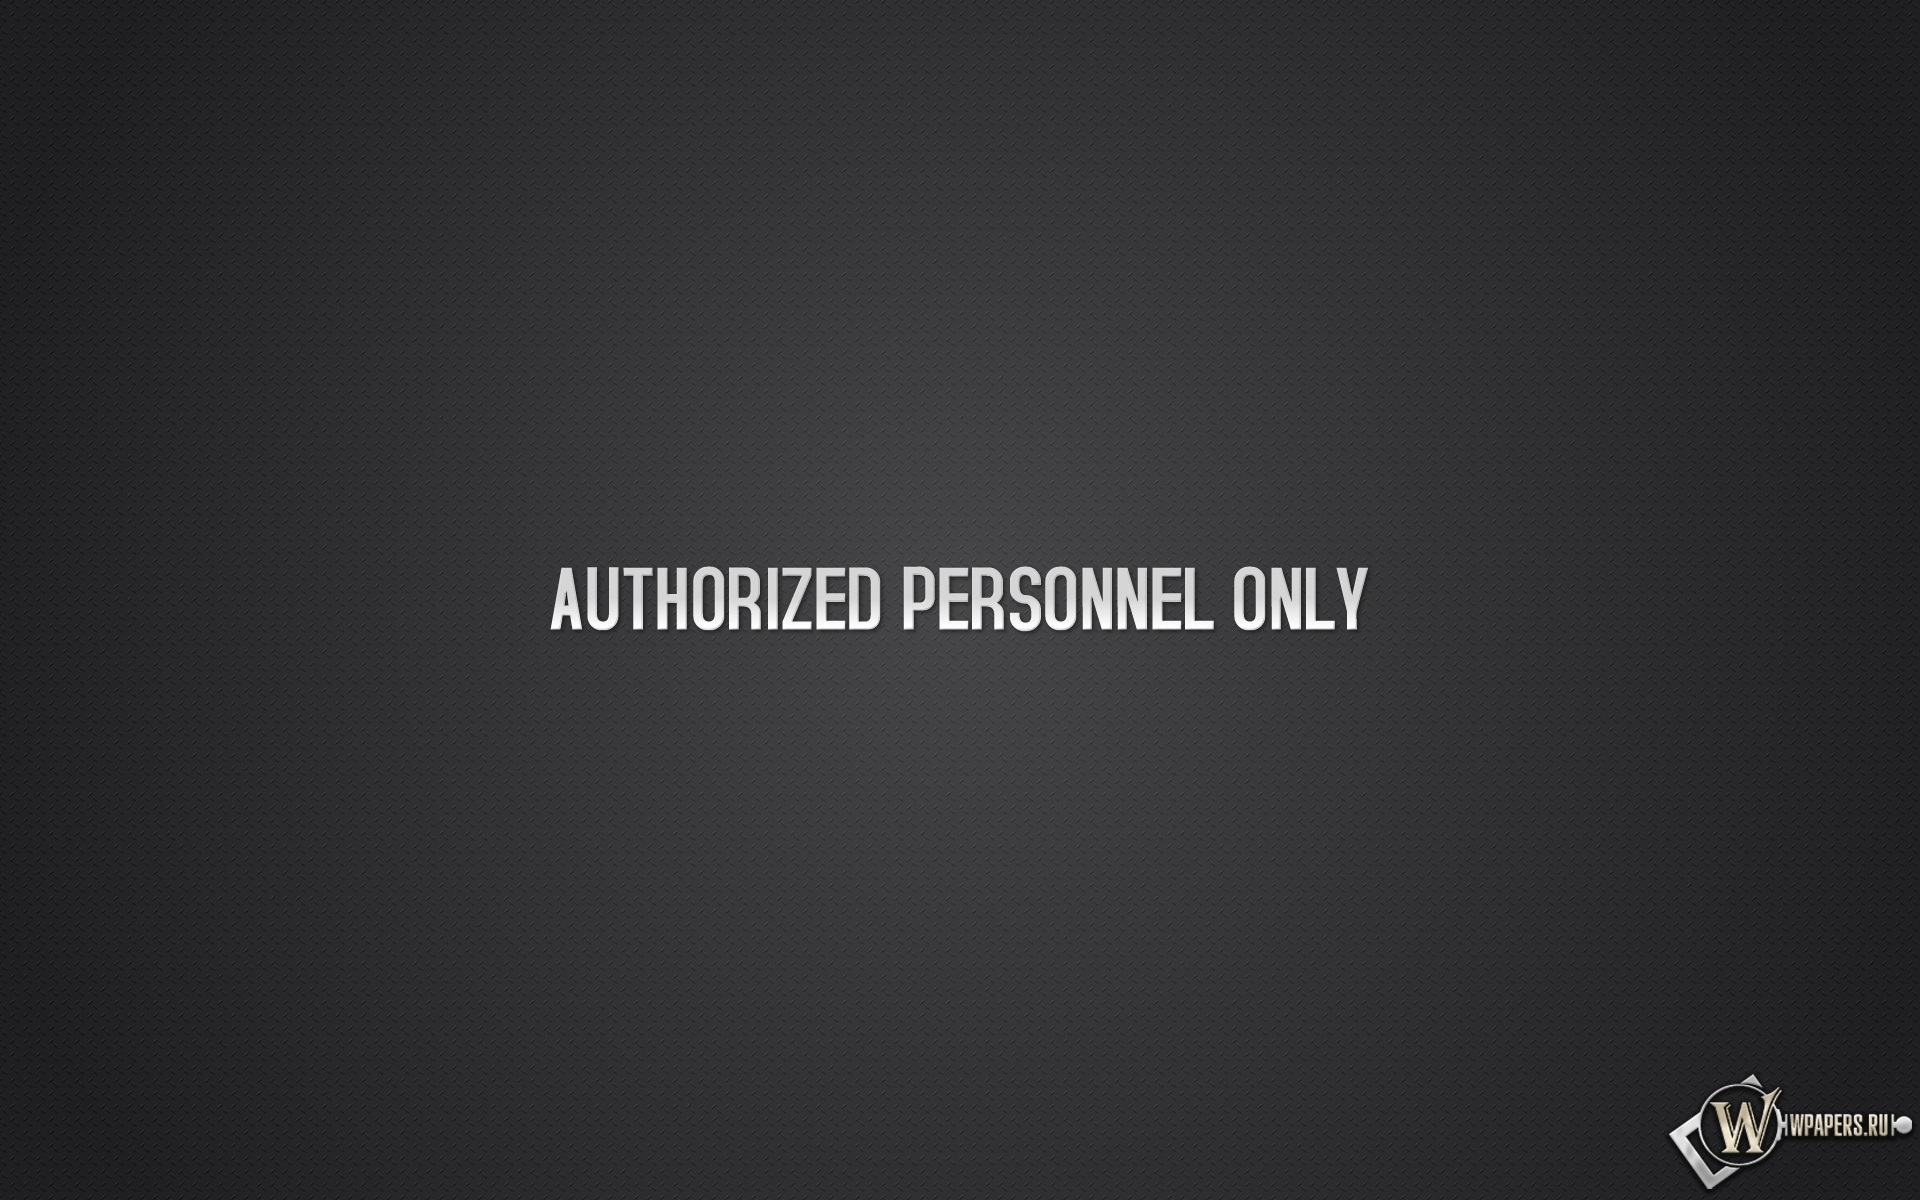 Authorized personnel only 1920x1200